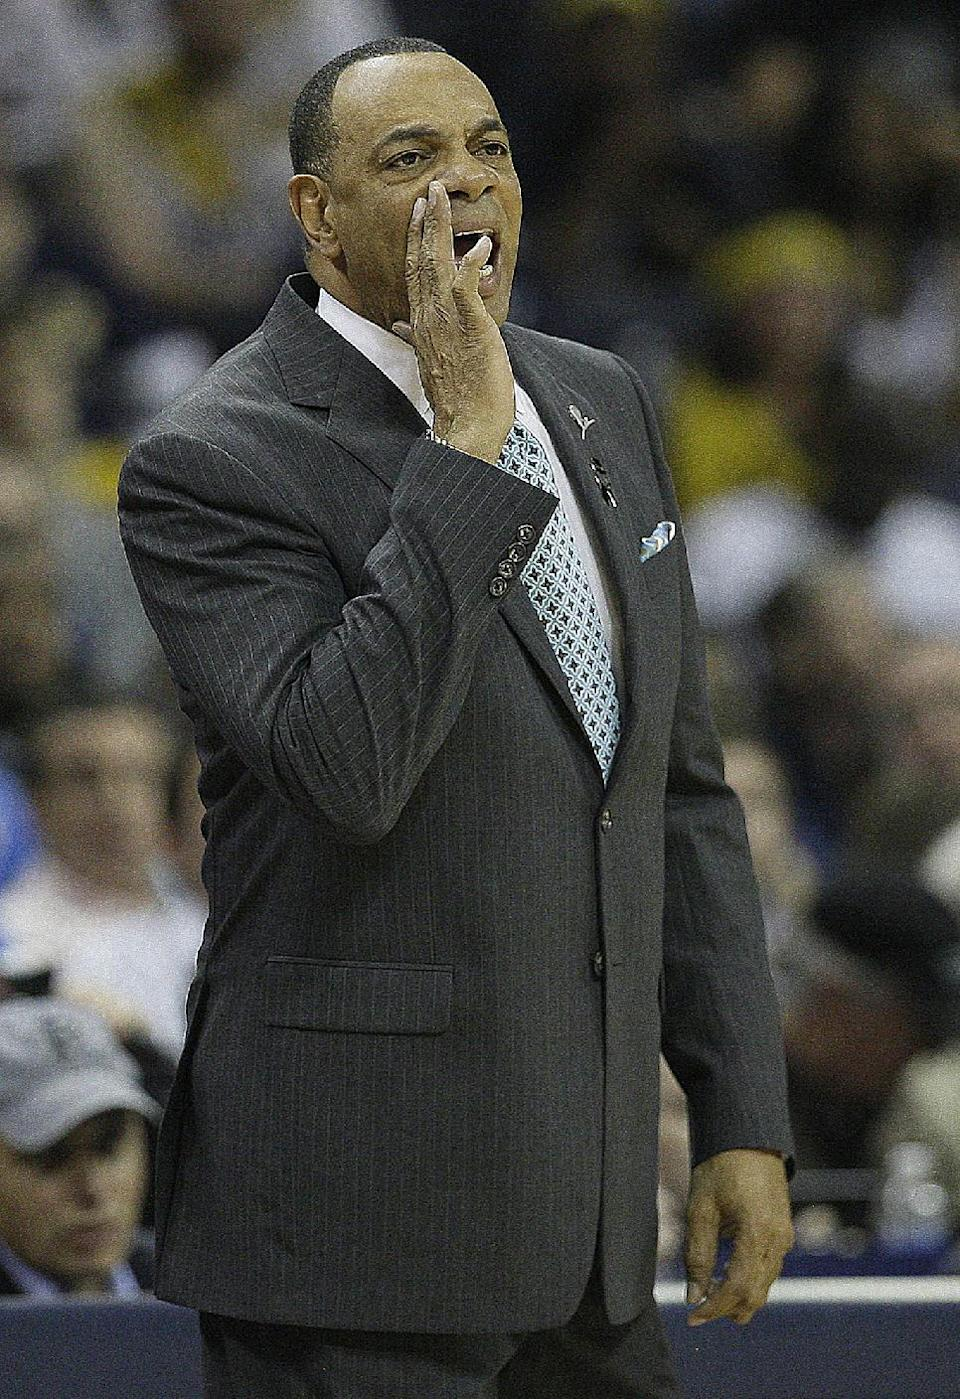 Memphis Grizzlies coach Lionel Hollins calls a play against the Oklahoma City Thunder during the first half of Game 4 in a Western Conference semifinal NBA basketball playoff series in Memphis, Tenn., Monday, May 13, 2013. (AP Photo/Danny Johnston)